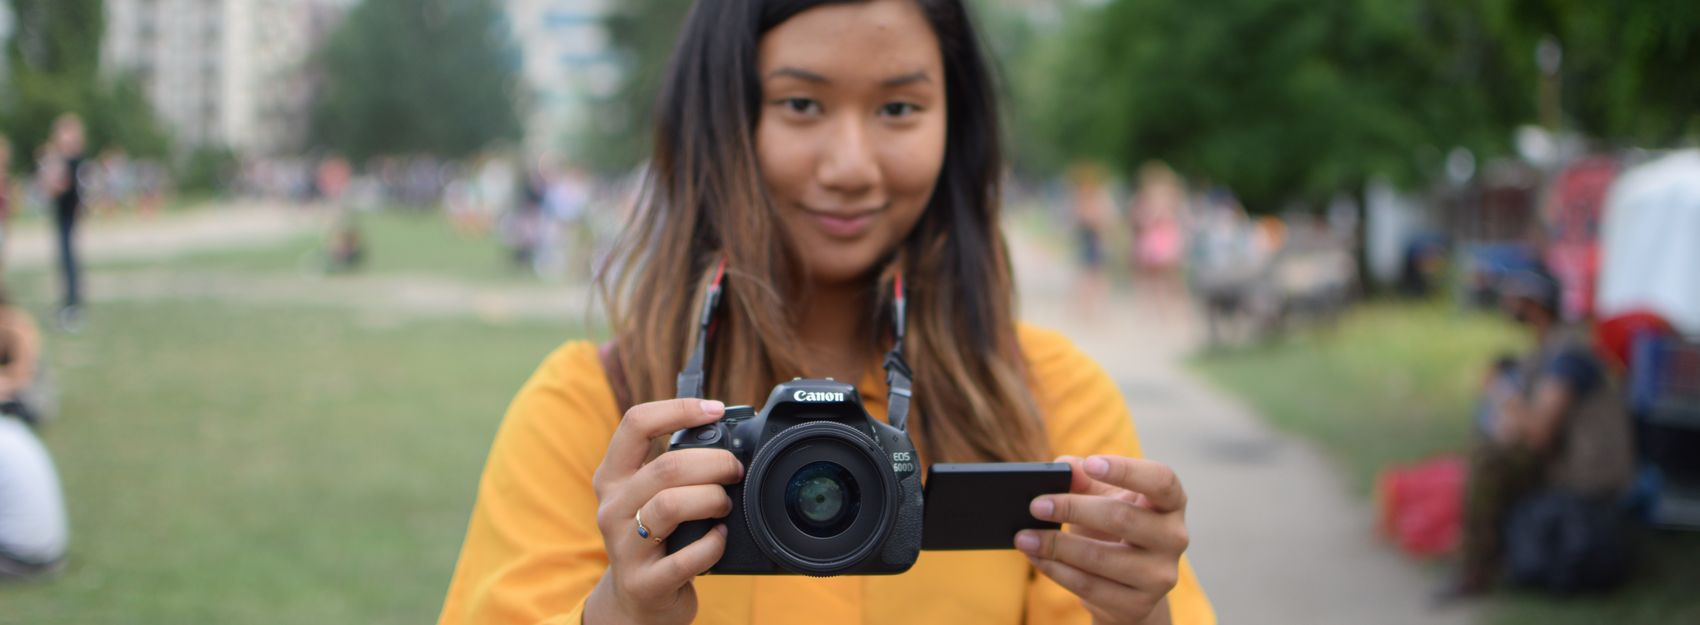 student in yellow shirt holding camera